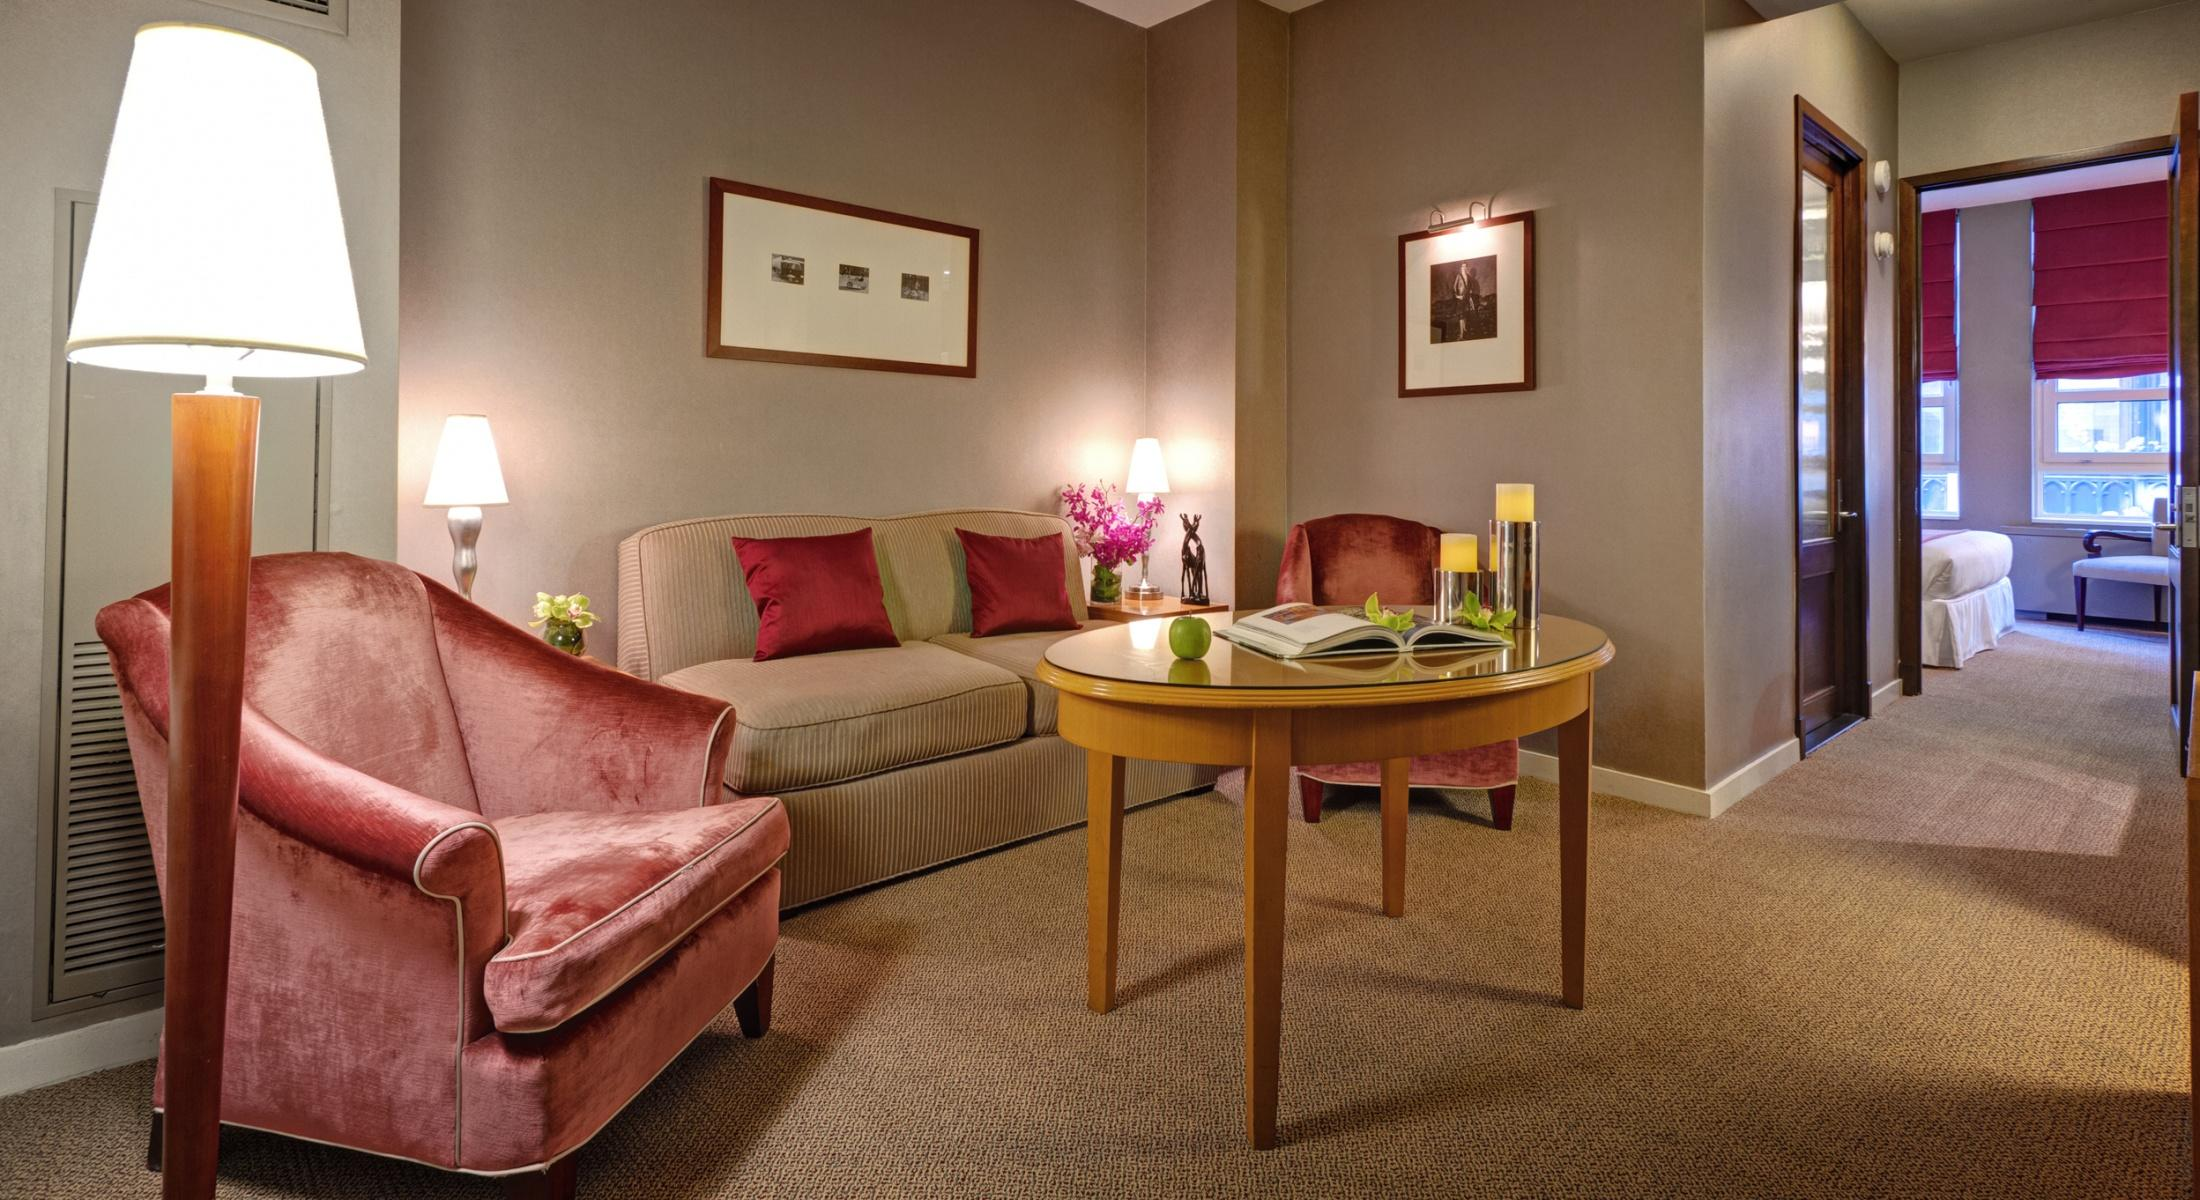 The living room in our Classic King Suite offers a tranquil space for you to relax during your visit to Hotel Giraffe